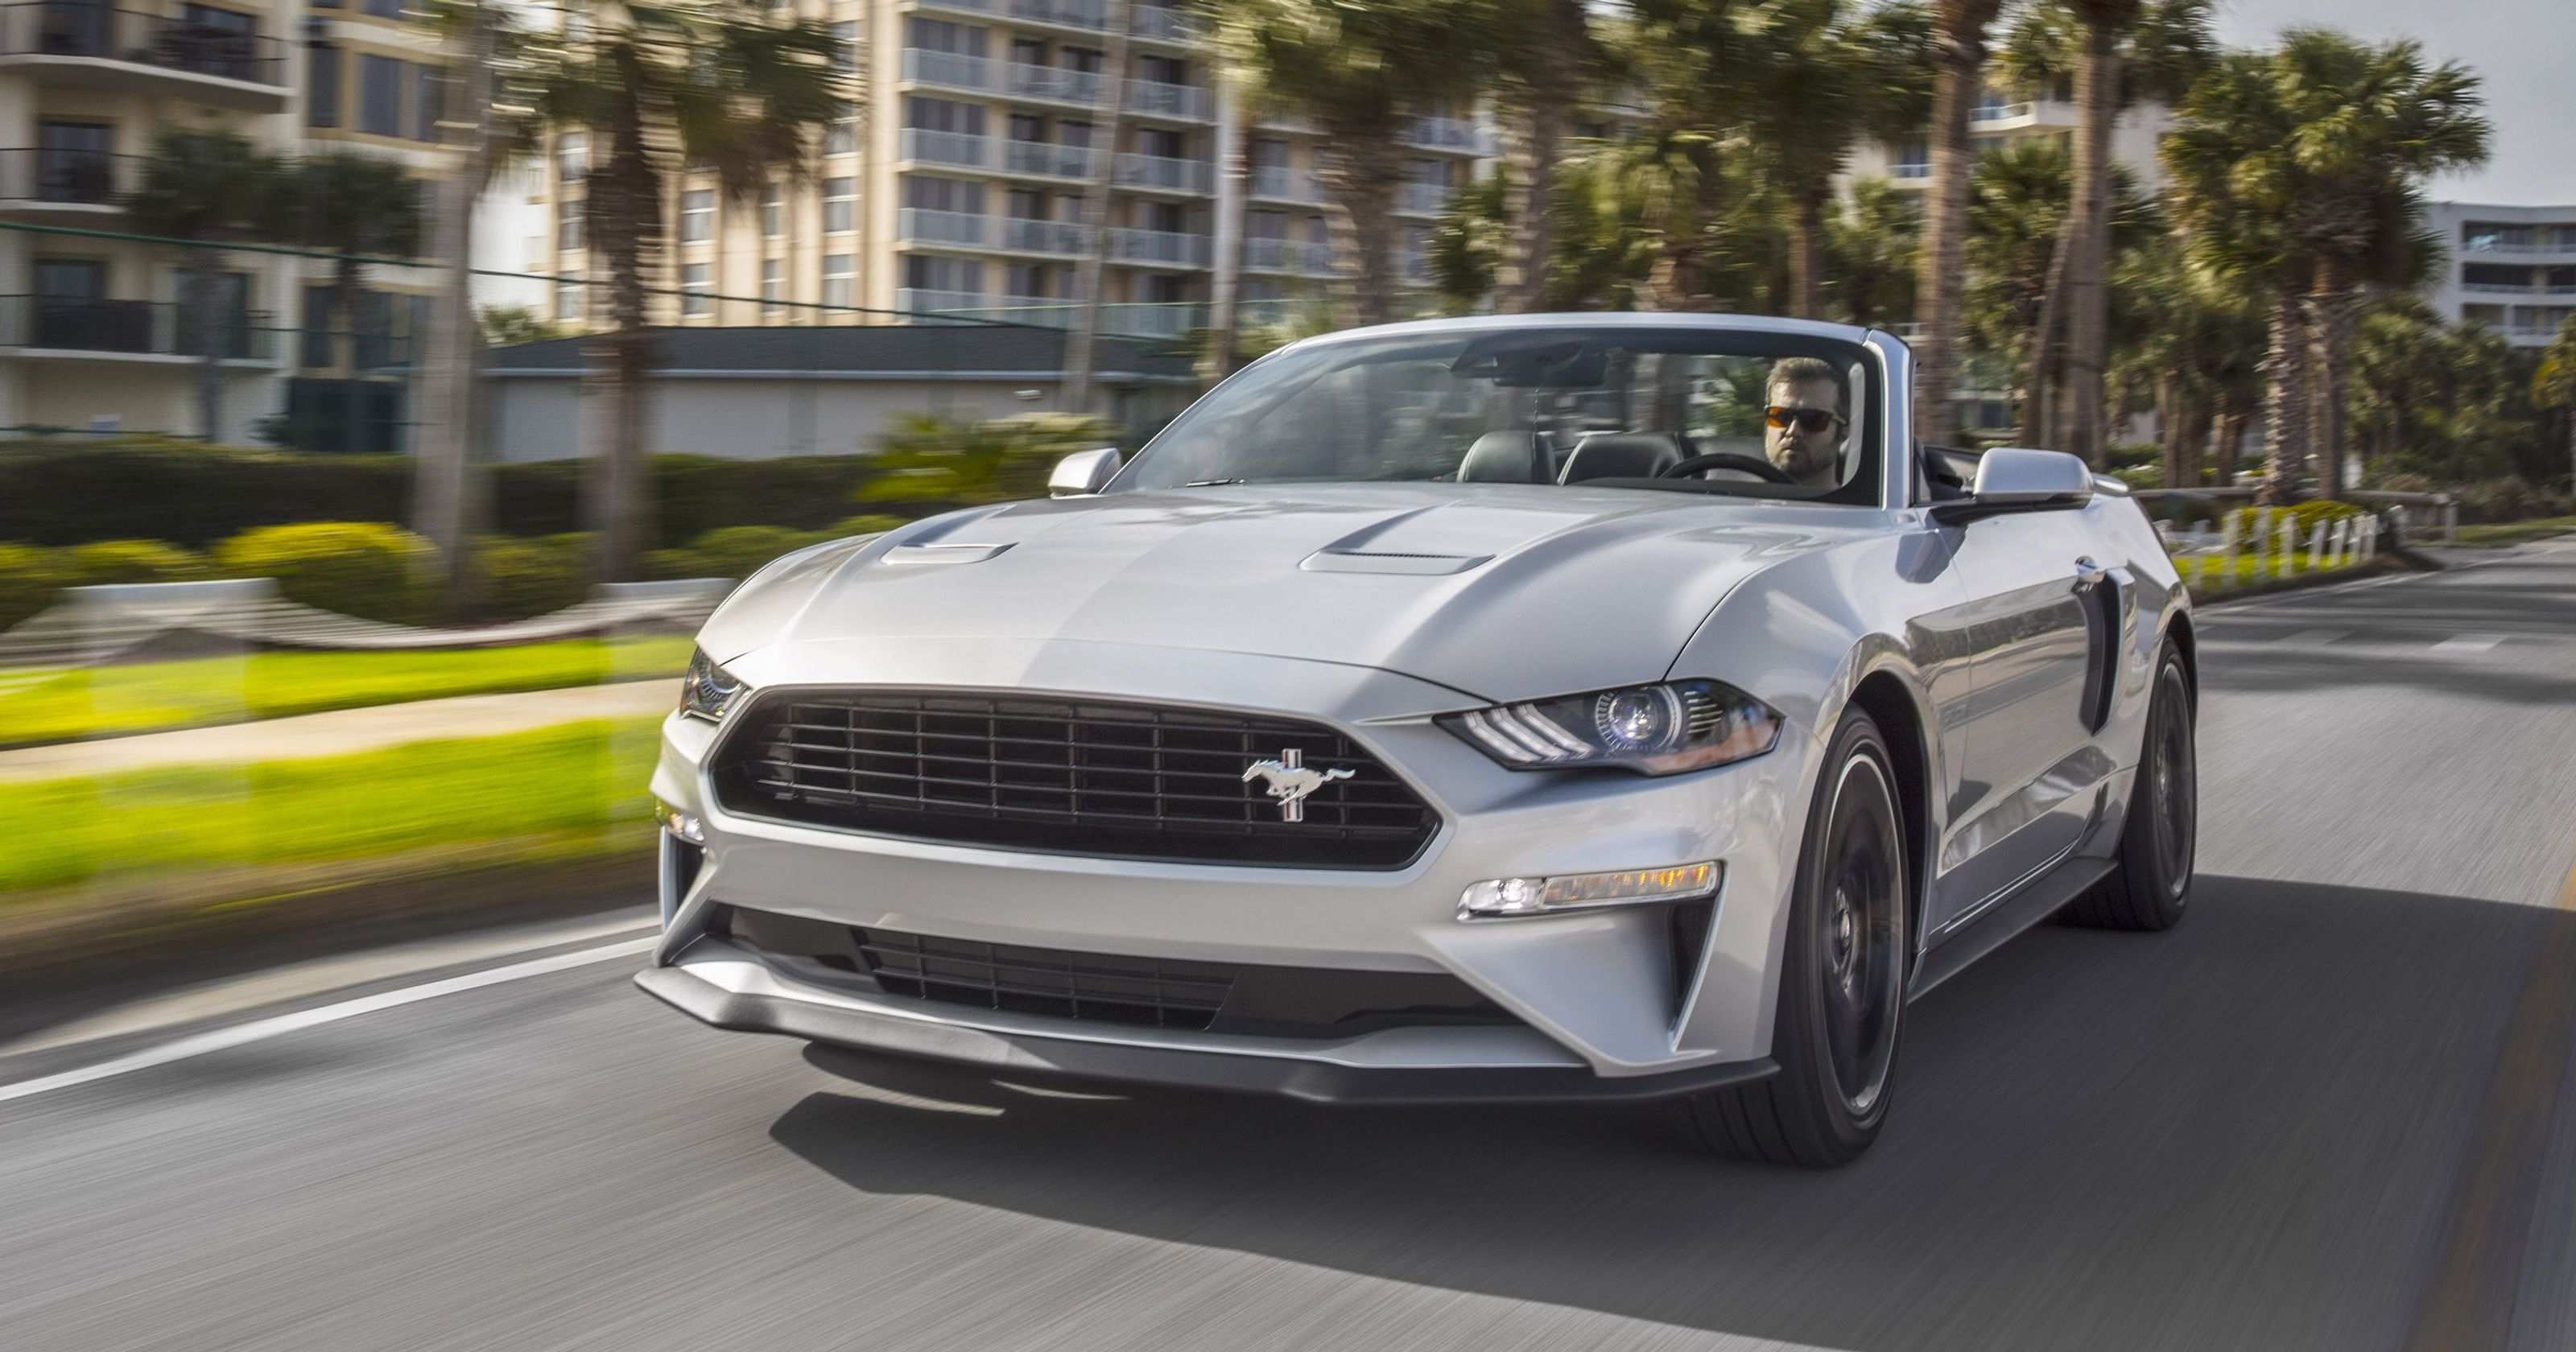 96 All New 2019 Mustang Mach 1 New Review